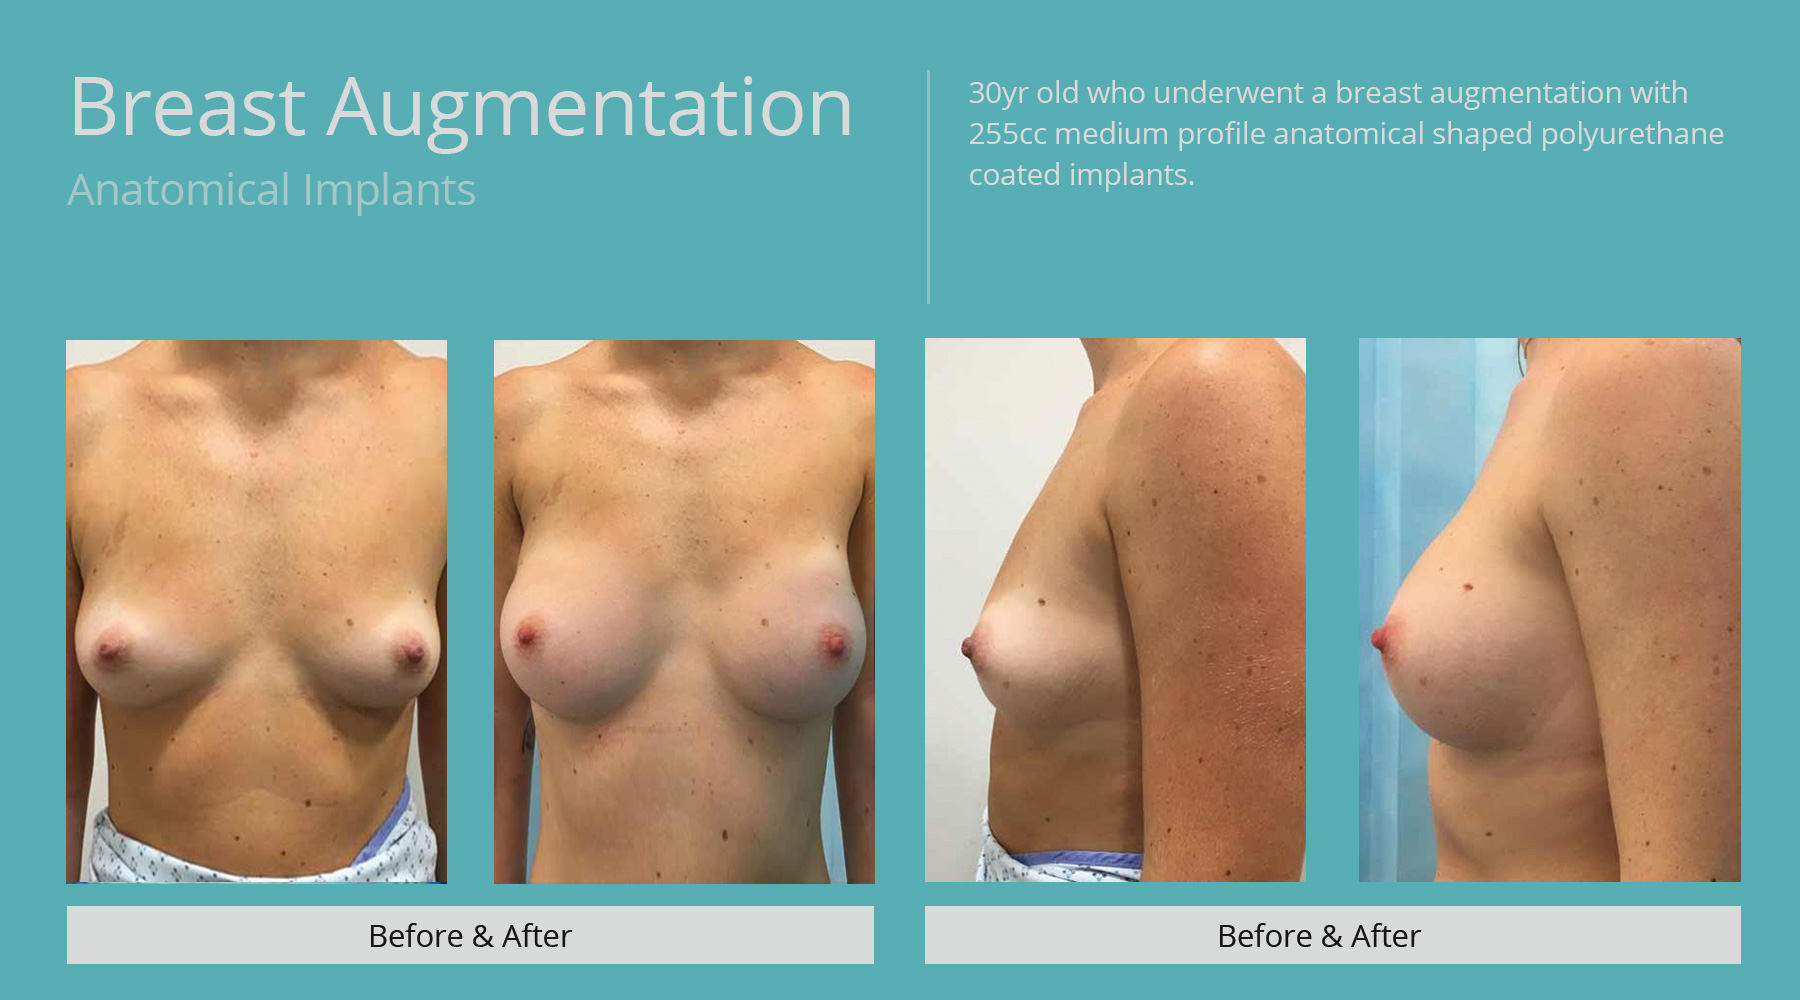 Breast-Augmentation-anatomical-31